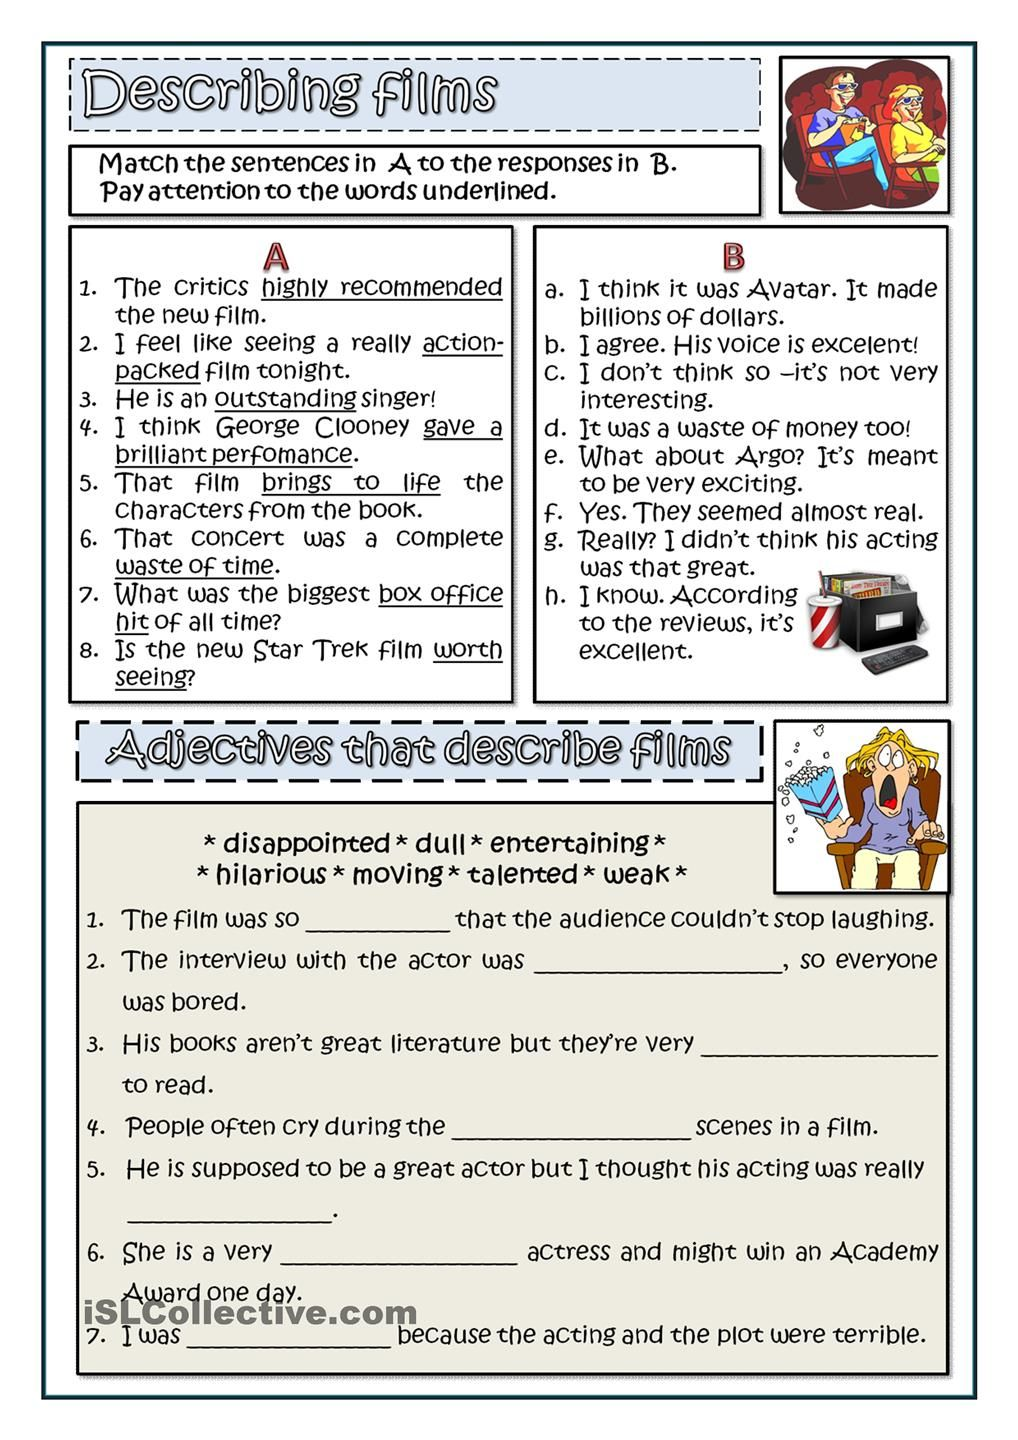 How to describe a film worksheets activities